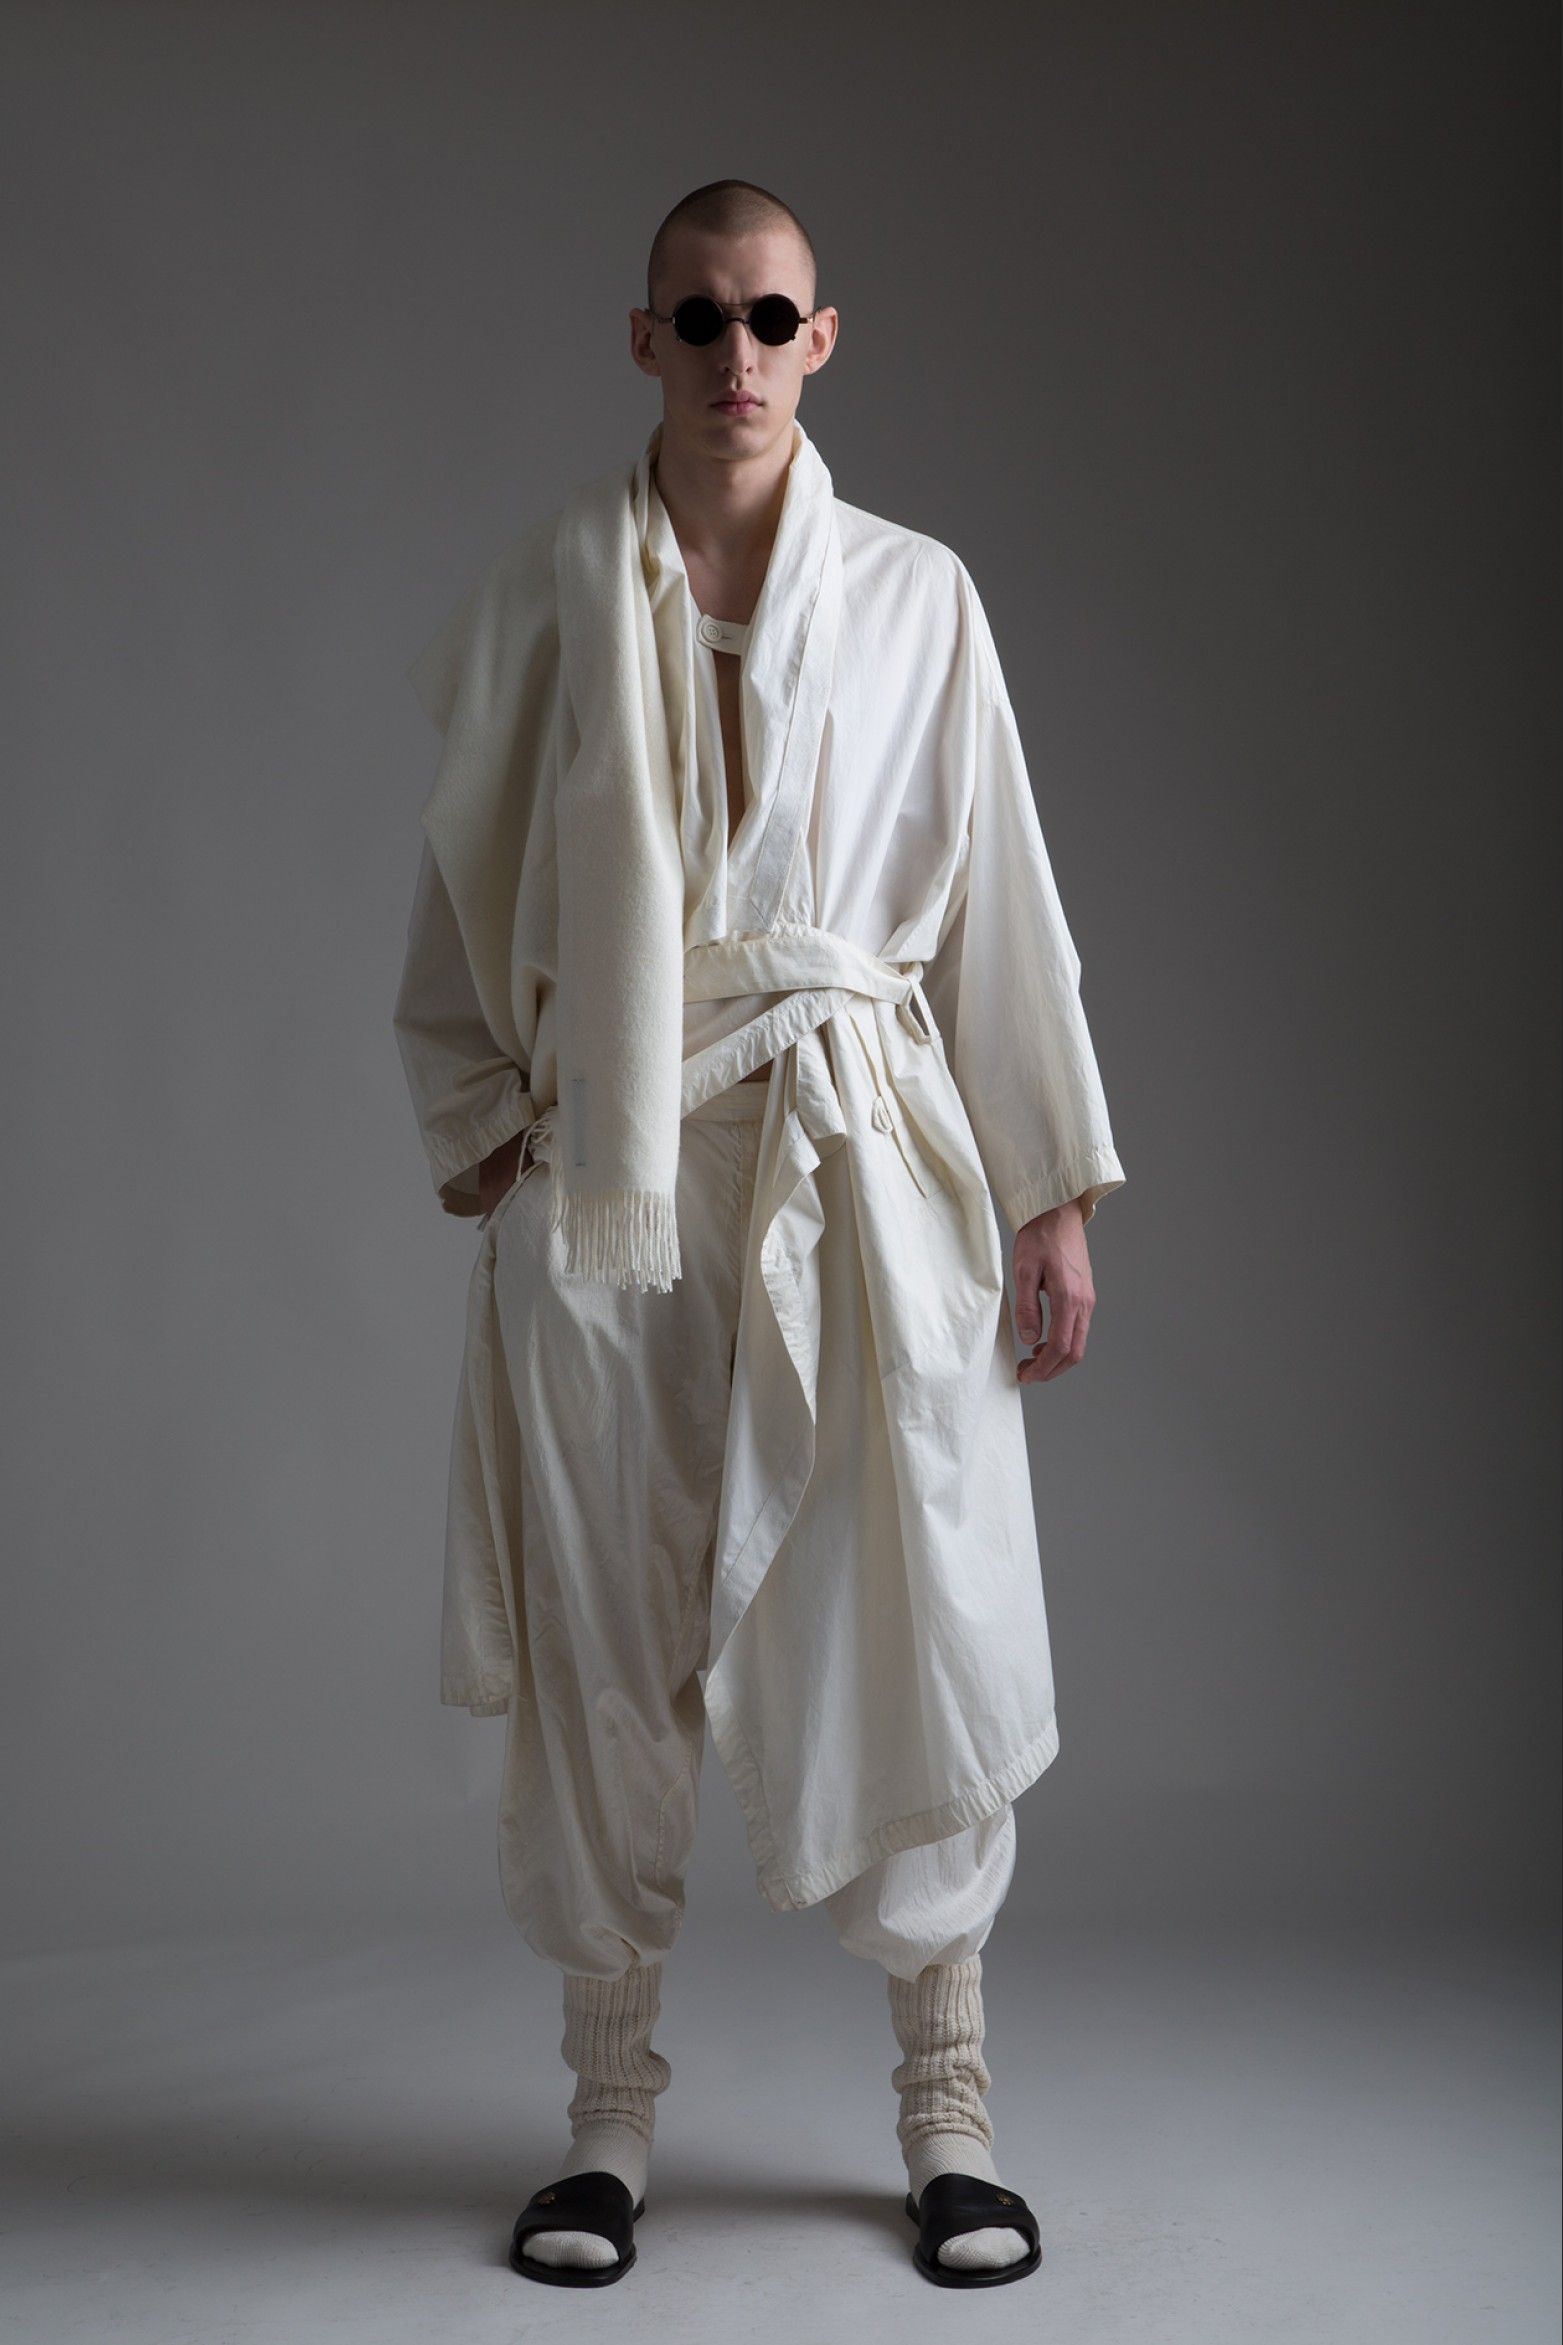 Trousers and coat from Issey Miyake Permanente collection. Image via Pinterest.